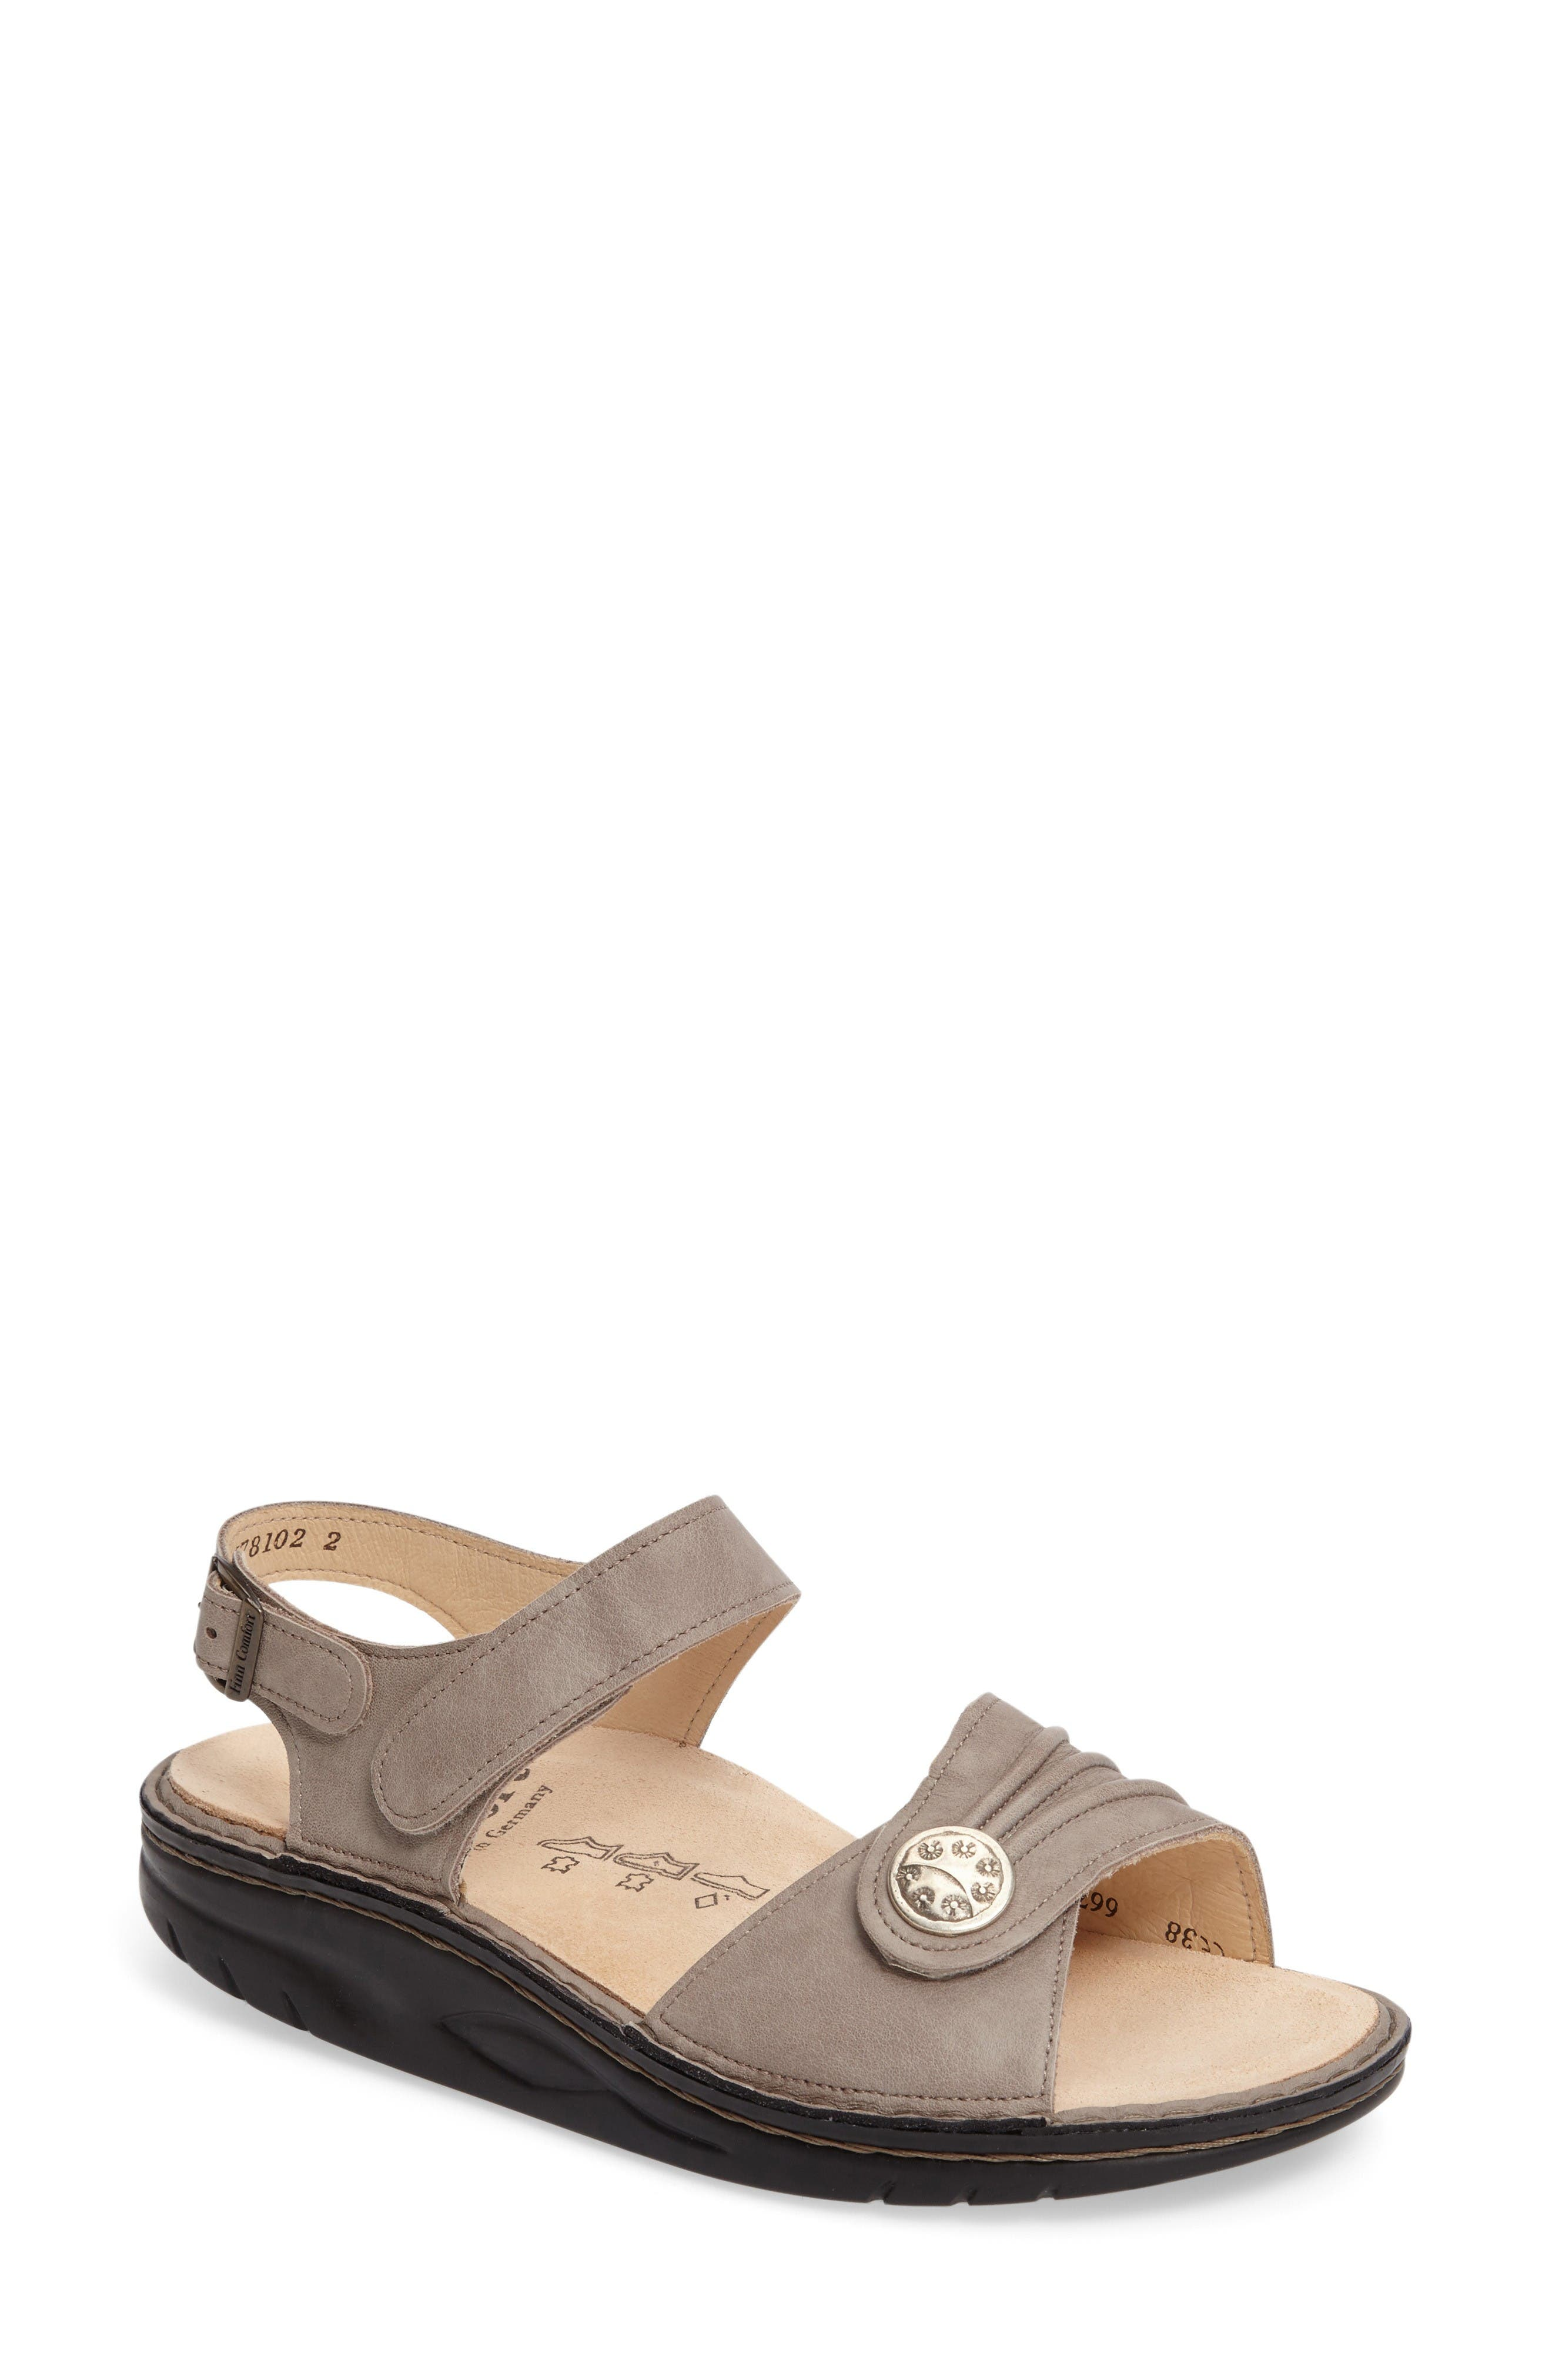 Main Image - FINNAMIC by Finn Comfort 'Sausalito' Sandal (Online Only)